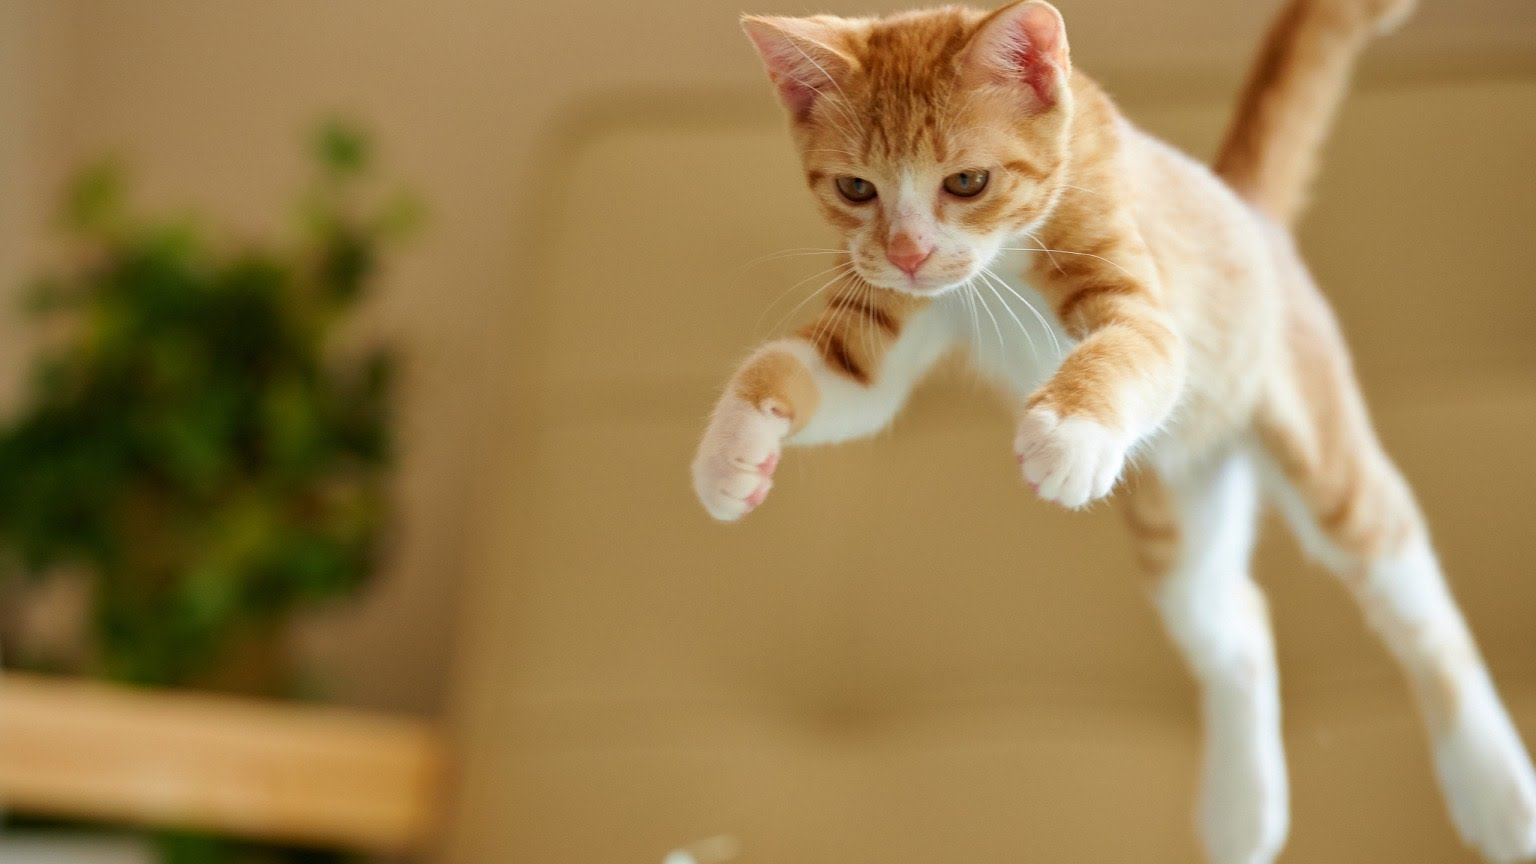 Why Do Cats Suddenly Attack Their Owners